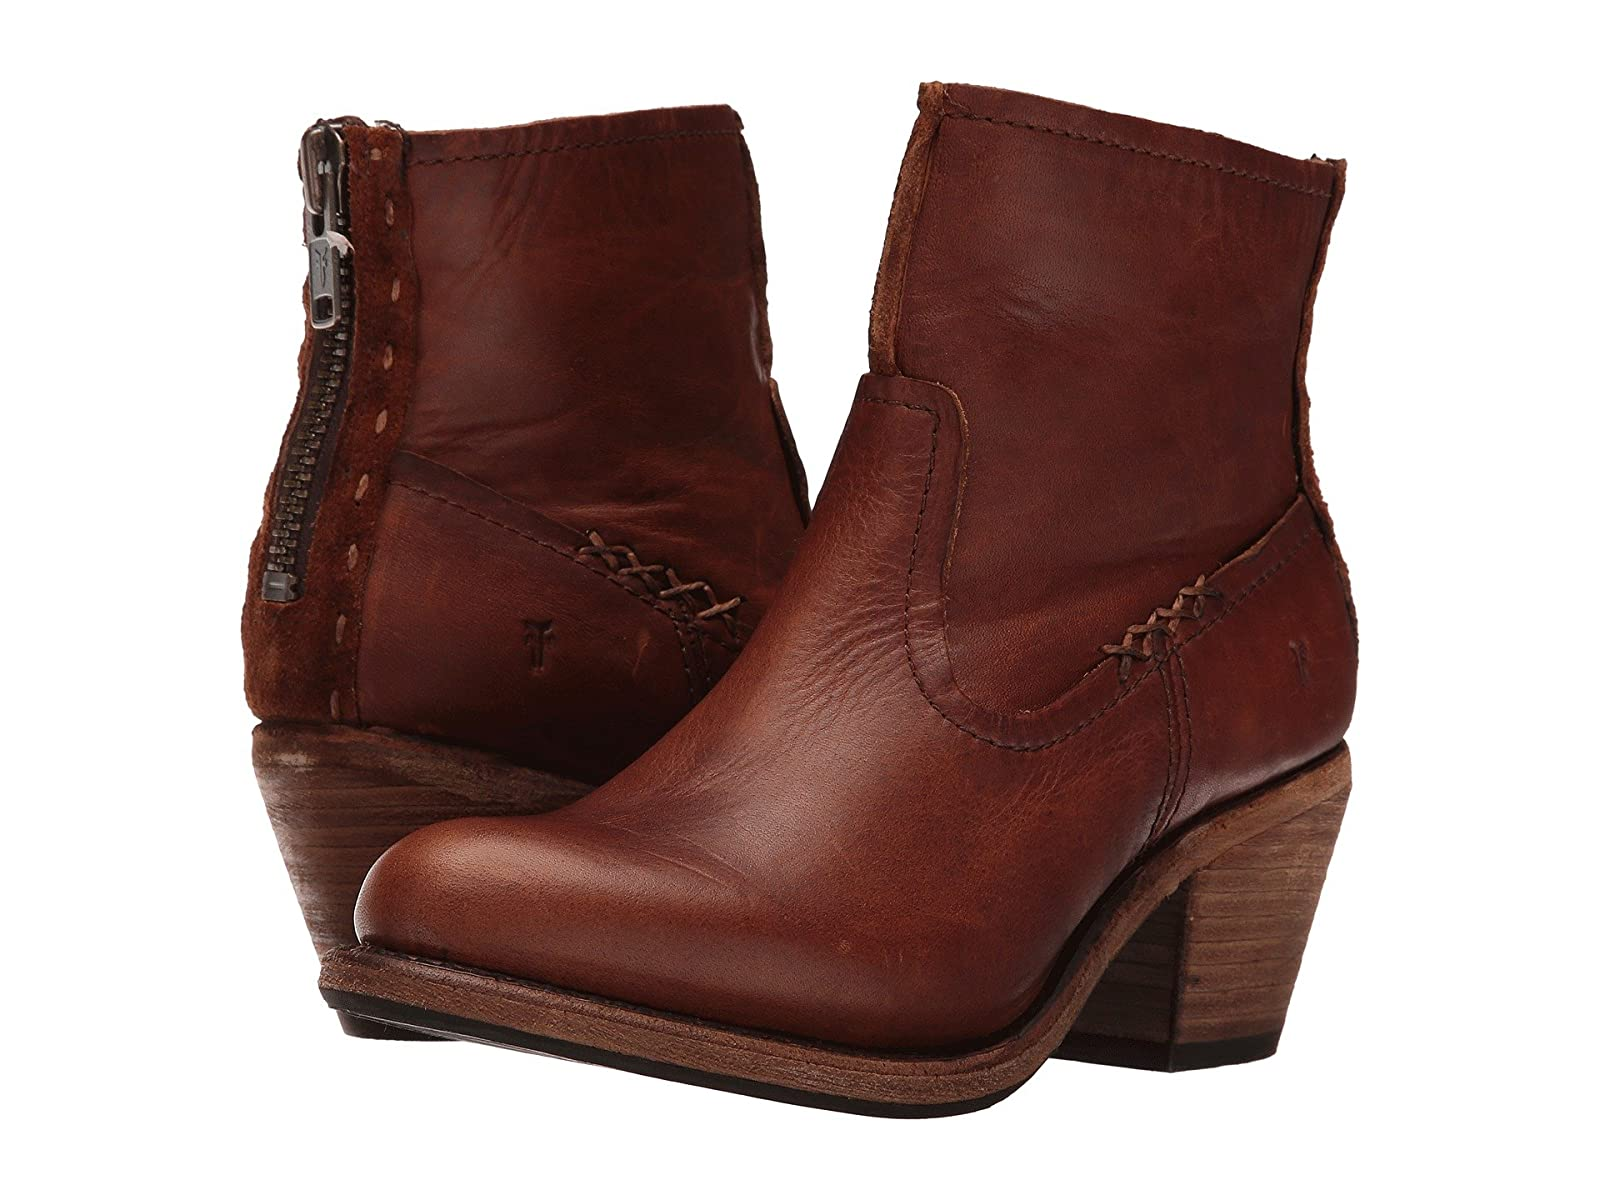 Frye Leslie Artisan ShortCheap and distinctive eye-catching shoes